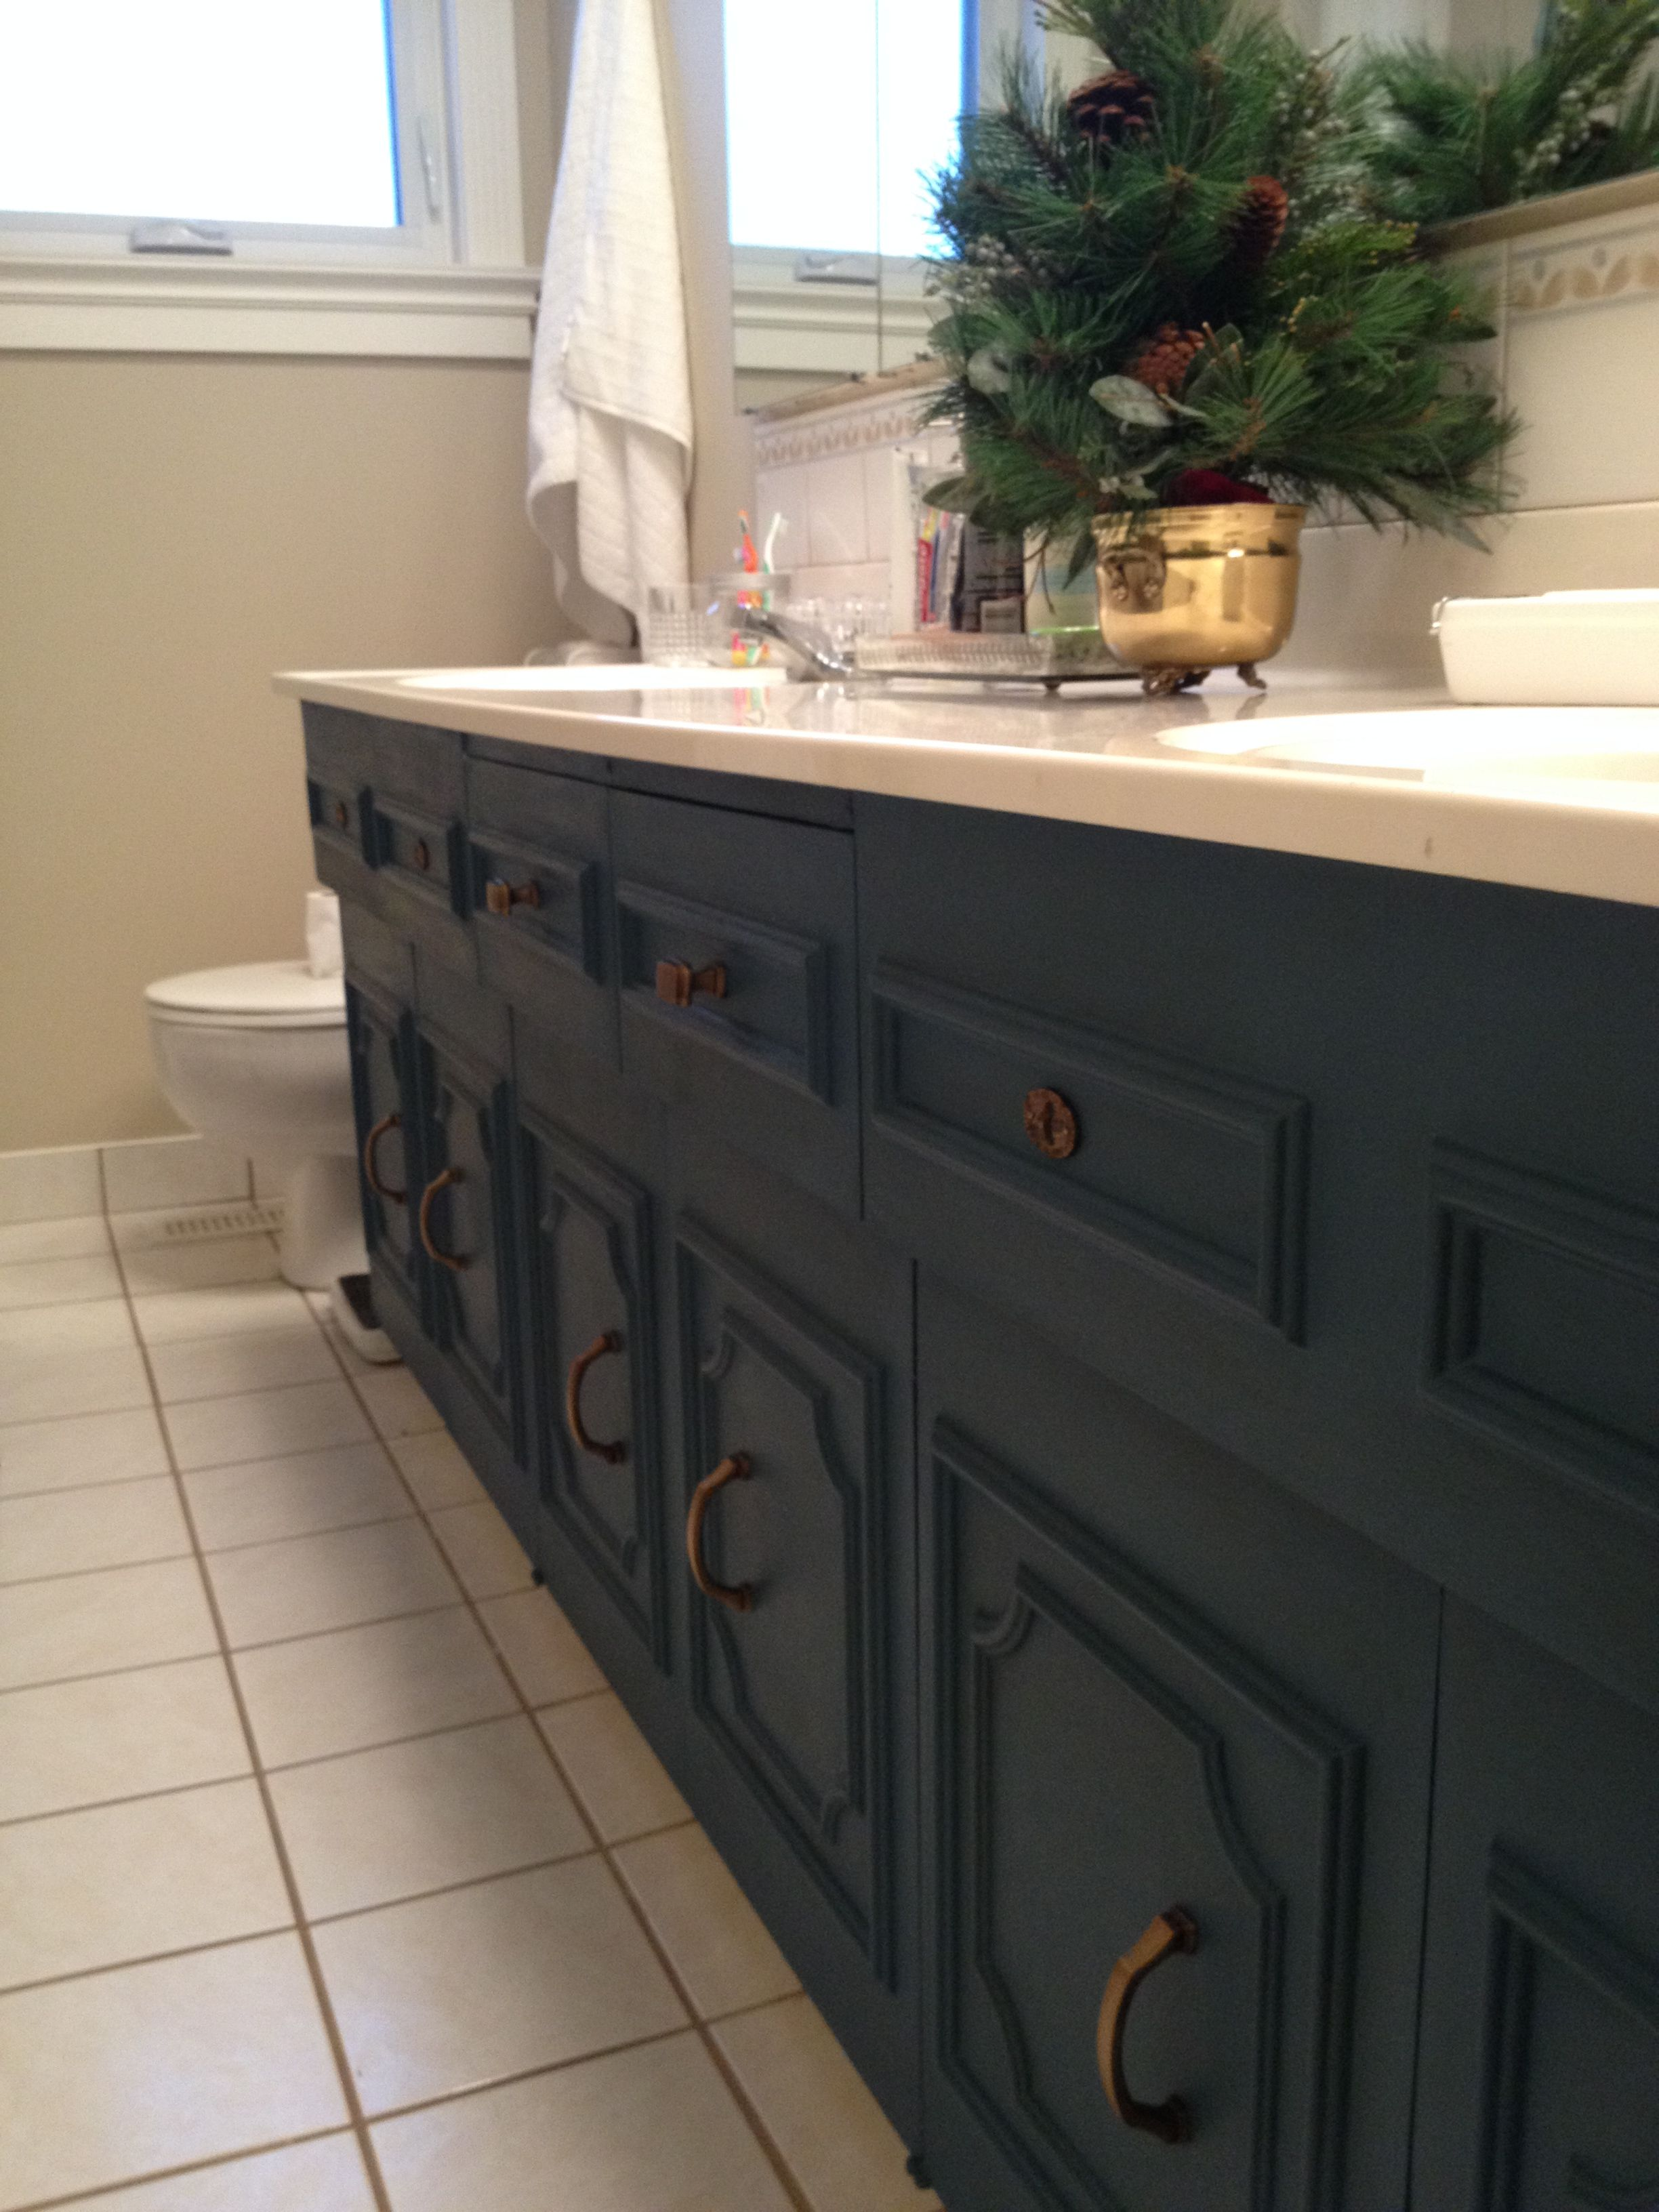 Pin By Kristen Tappenden On The Bathroom Refresh Painted Vanity Bathroom Painting Bathroom Cabinets Annie Sloan Painted Furniture [ 3264 x 2448 Pixel ]